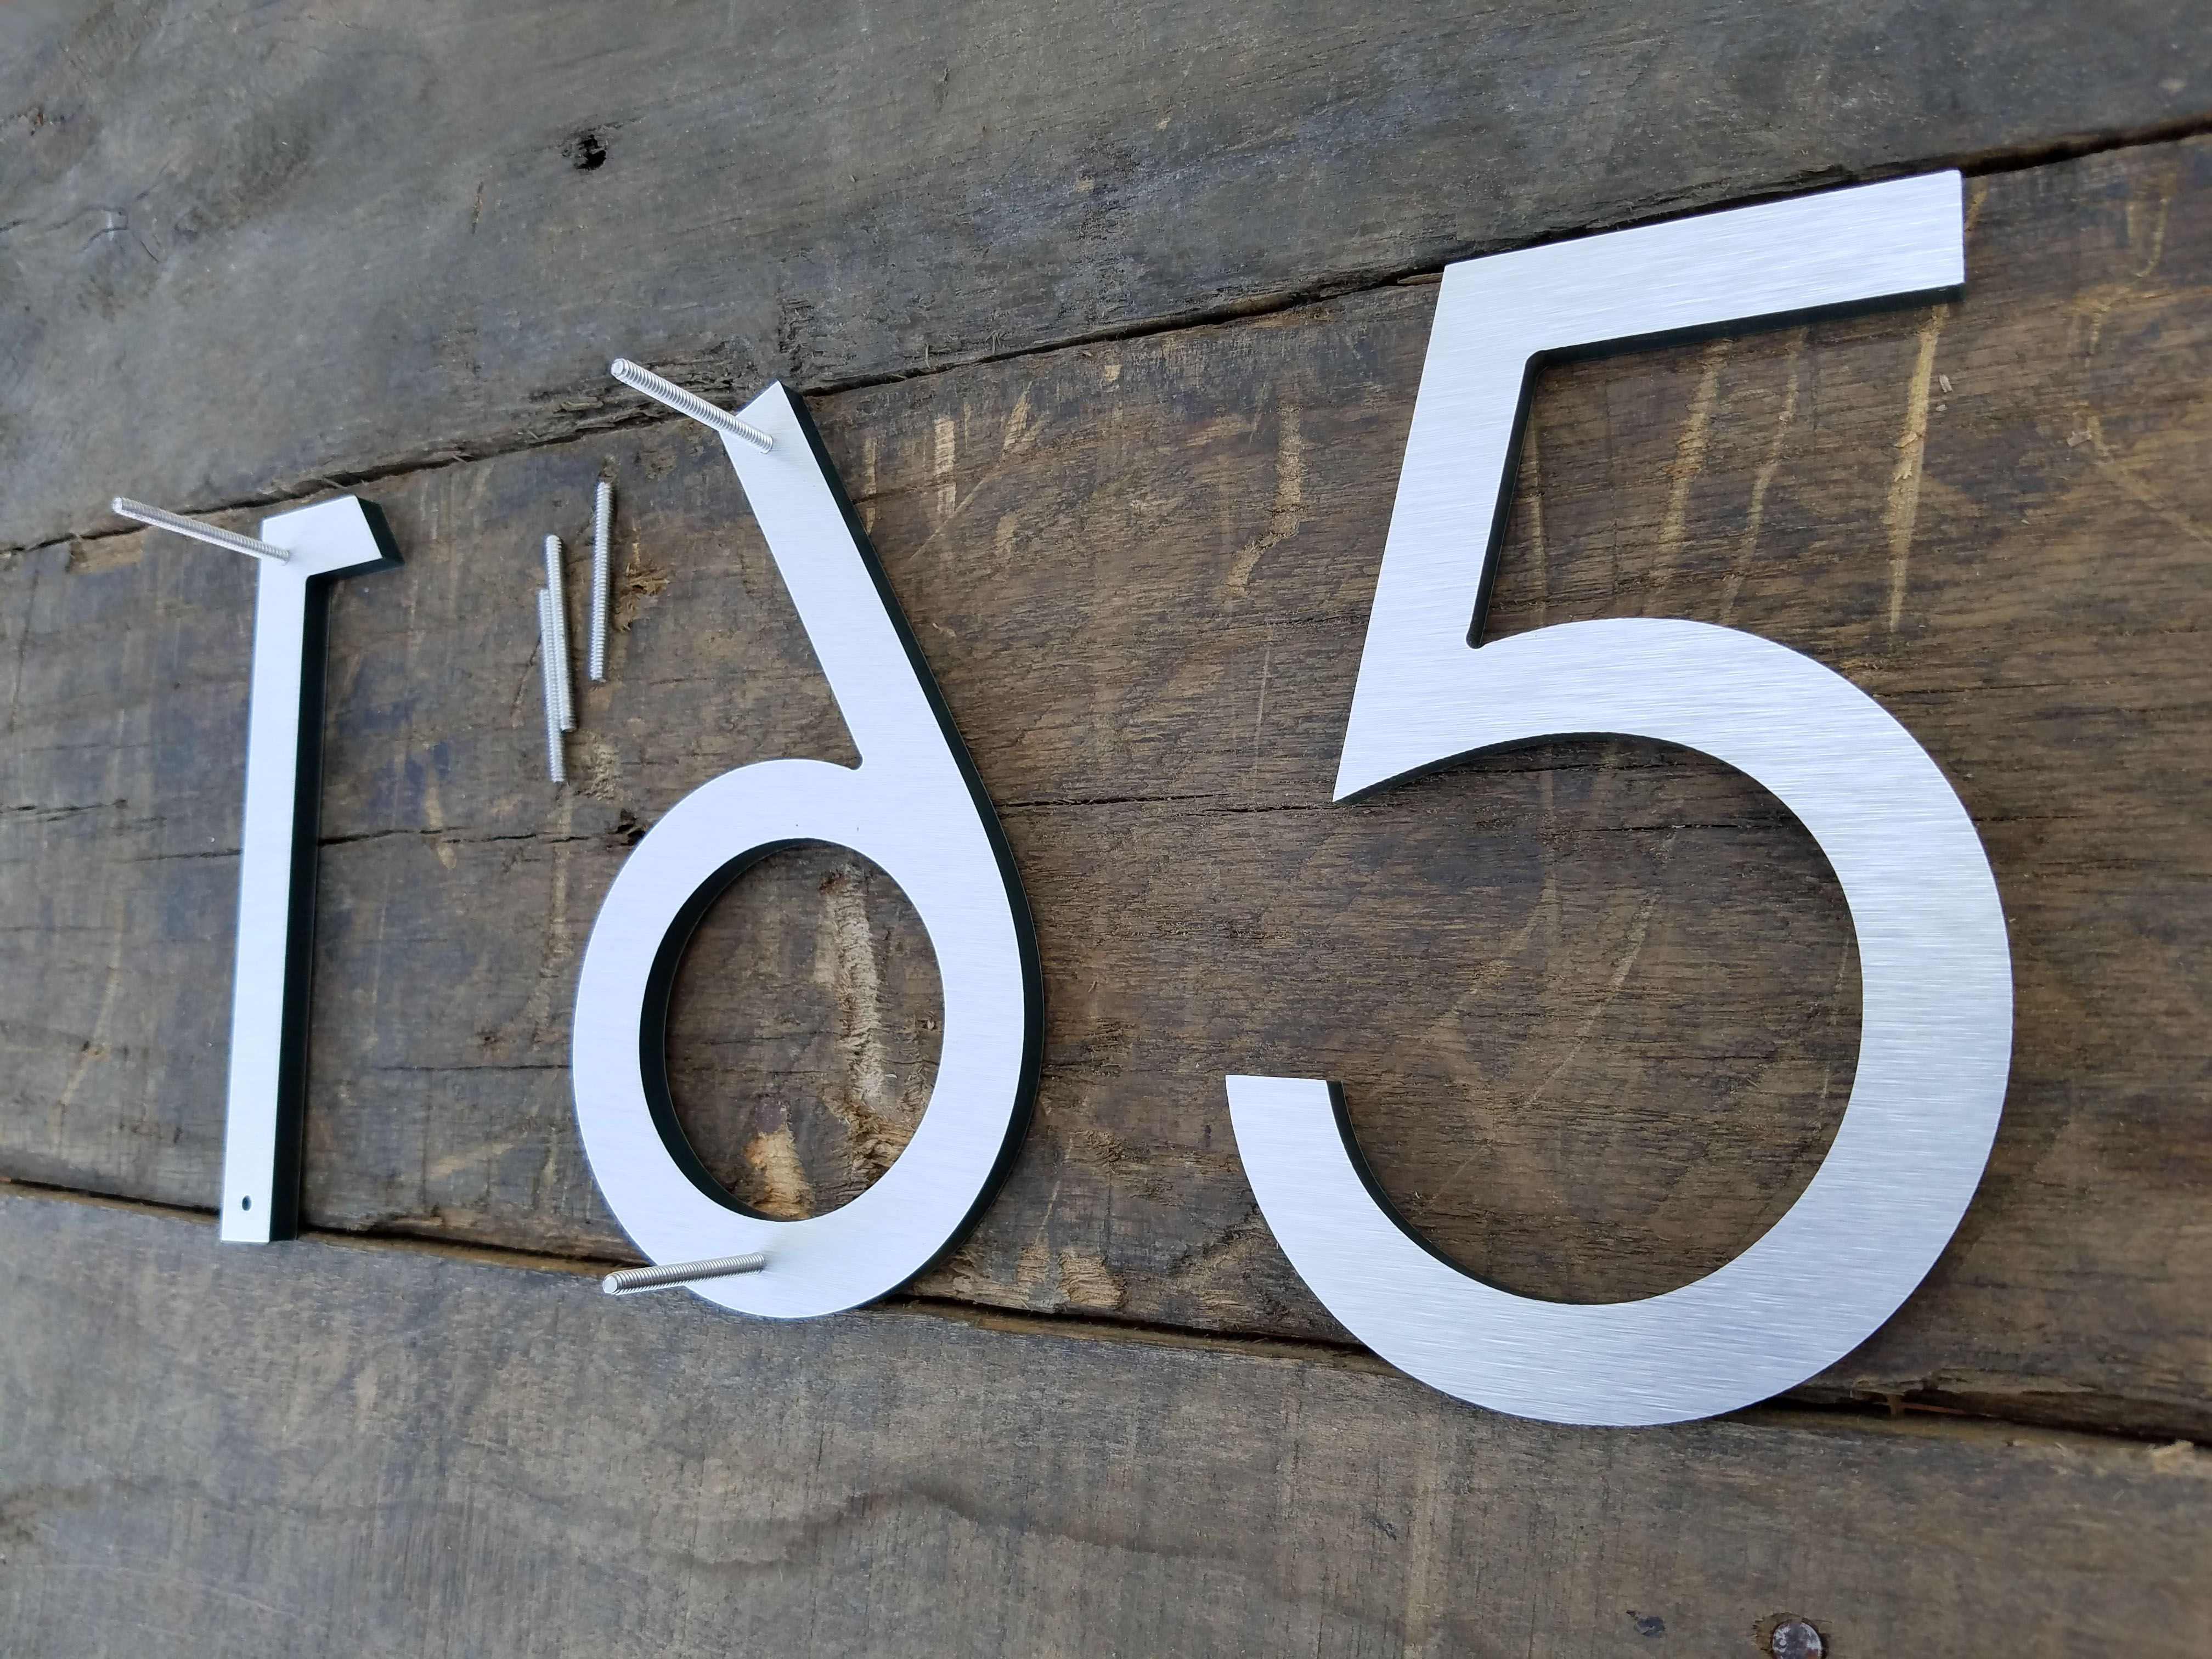 Modern Minimalist House Numbers By Timberartsigns Com Modern House Numbers Black House Numbers Large House Numbers Curb Appeal